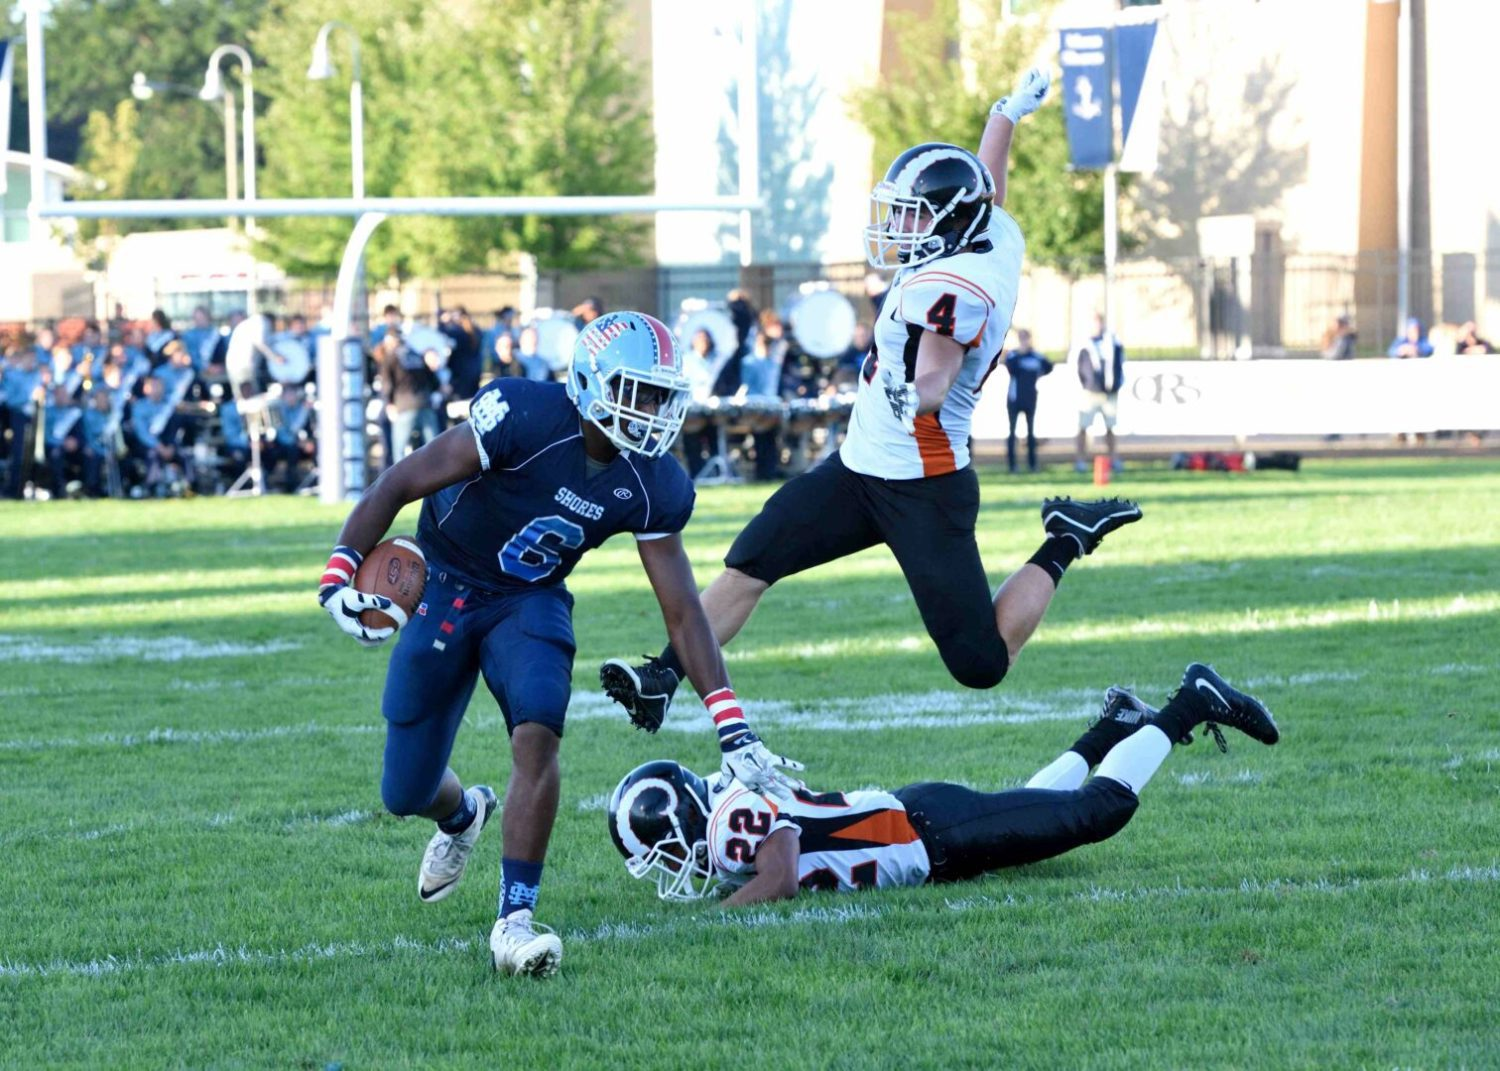 Mona Shores overcomes early deficit, beats Rockford 31-10 to avenge its only regular season loss in 2014